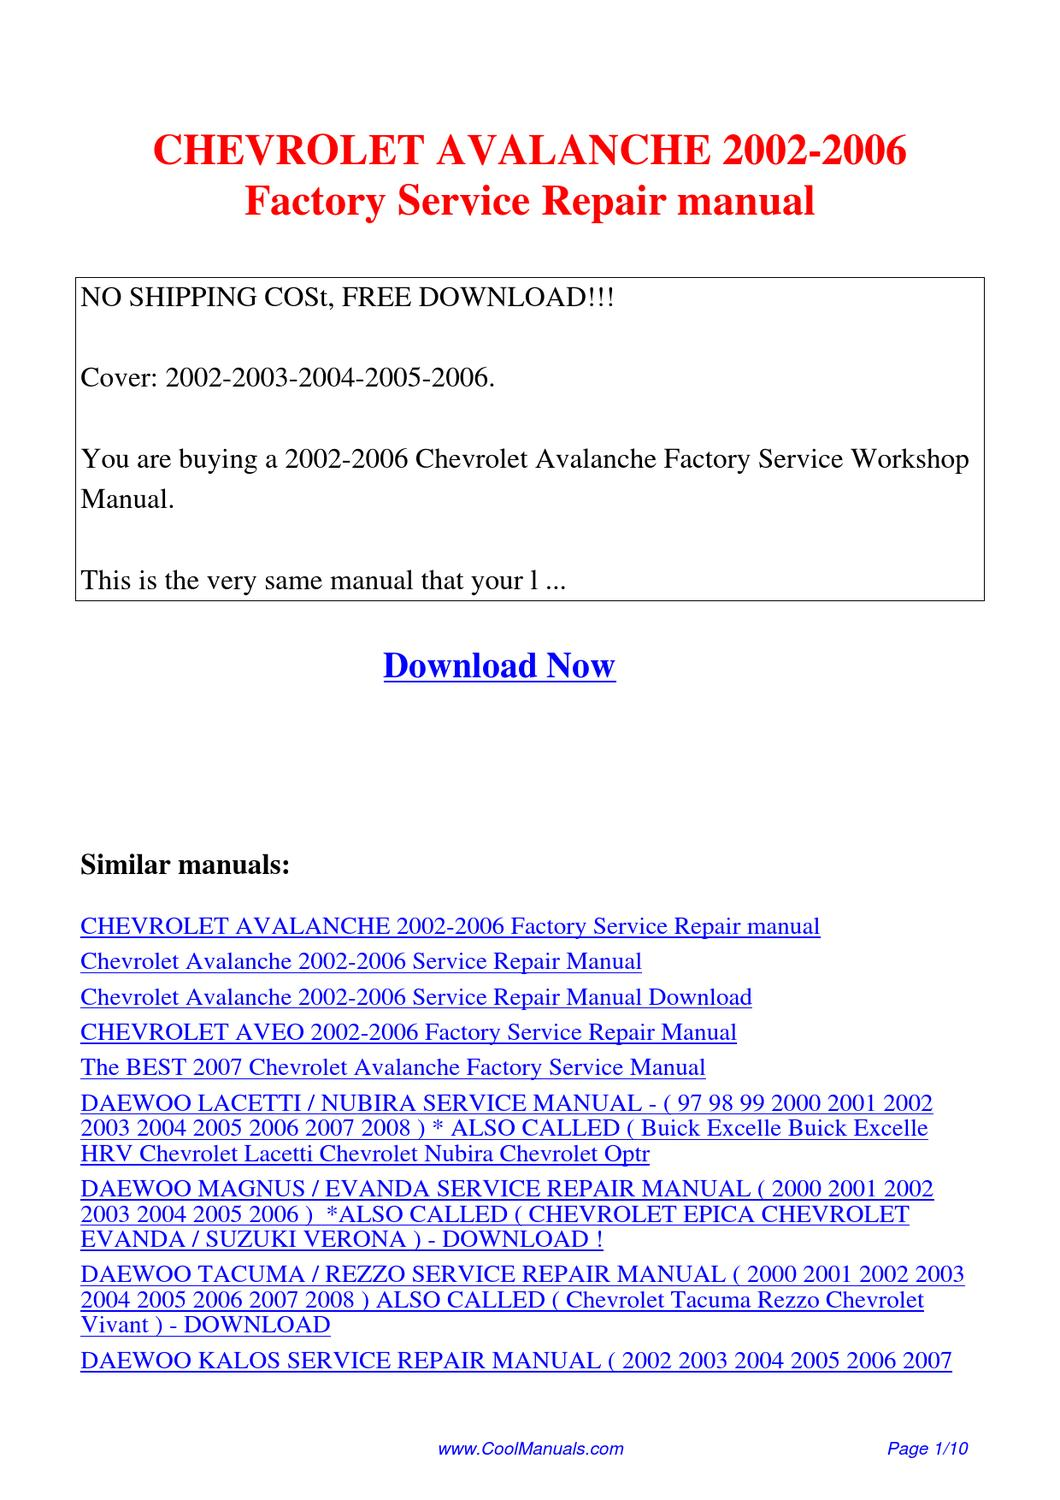 CHEVROLET_AVALANCHE_2002-2006_Factory_Service_Repair_manual by Lan Huang -  issuu